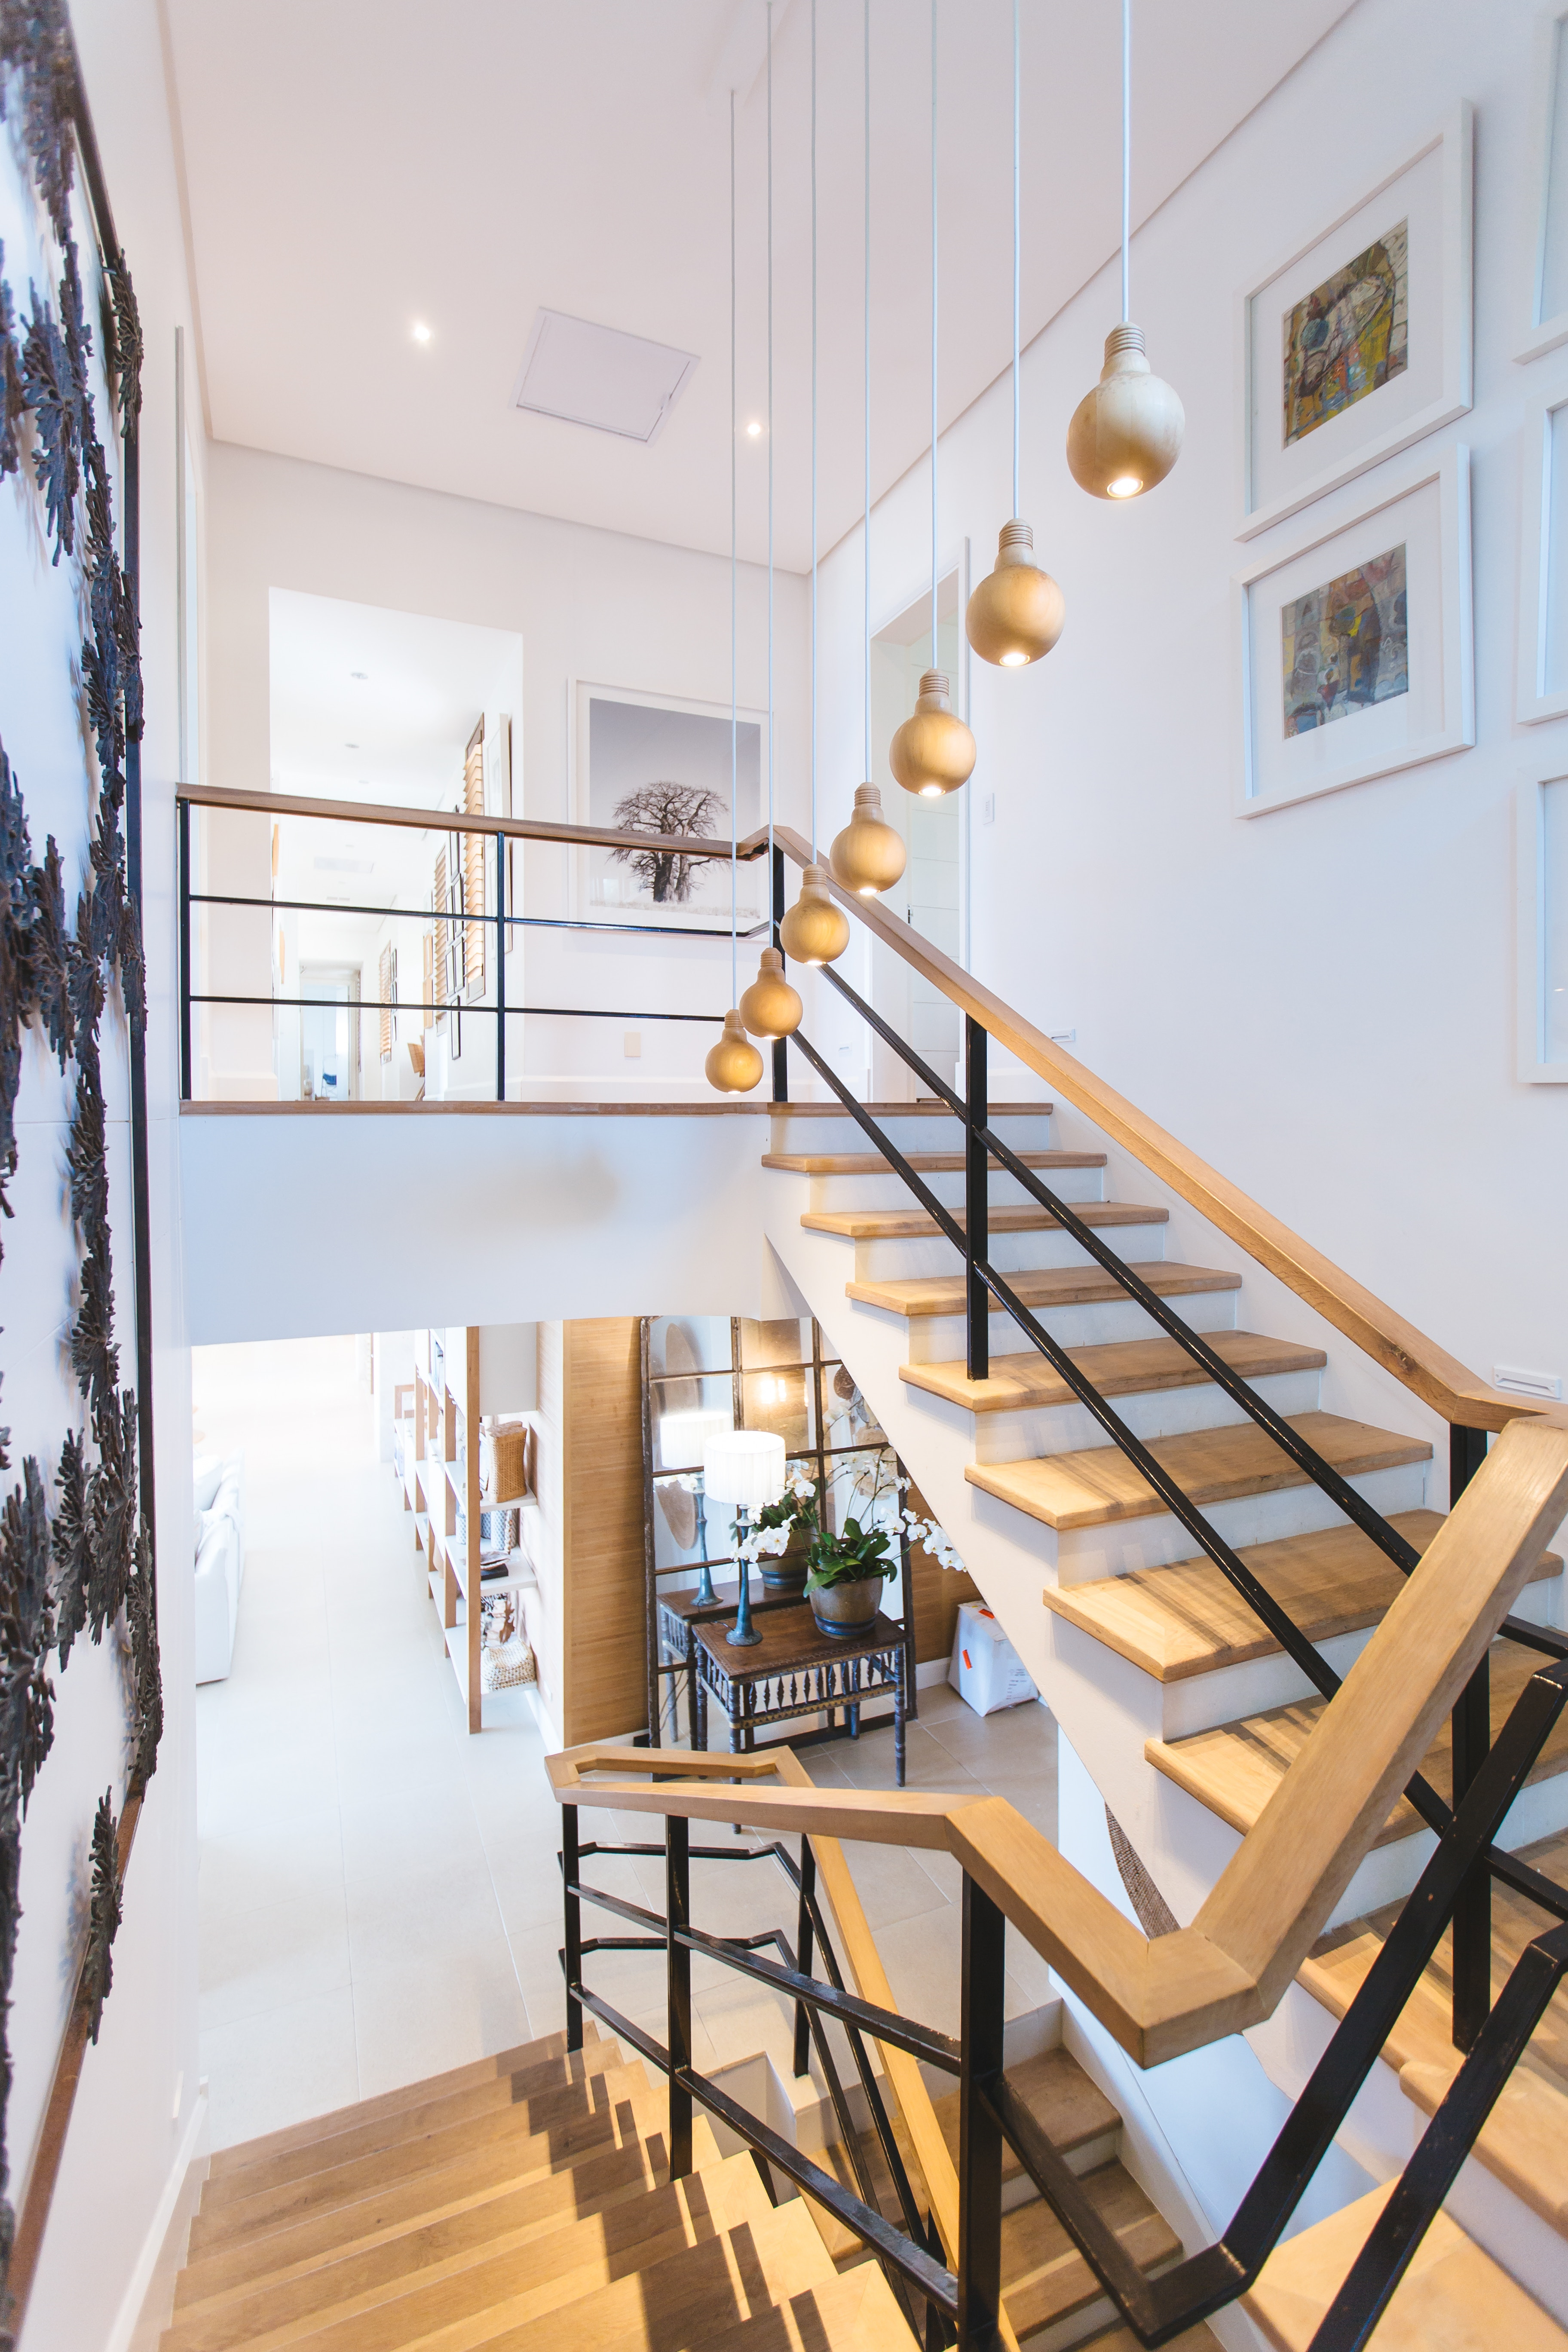 Beautiful compete interior contractor home with wraparound wooden staircase.